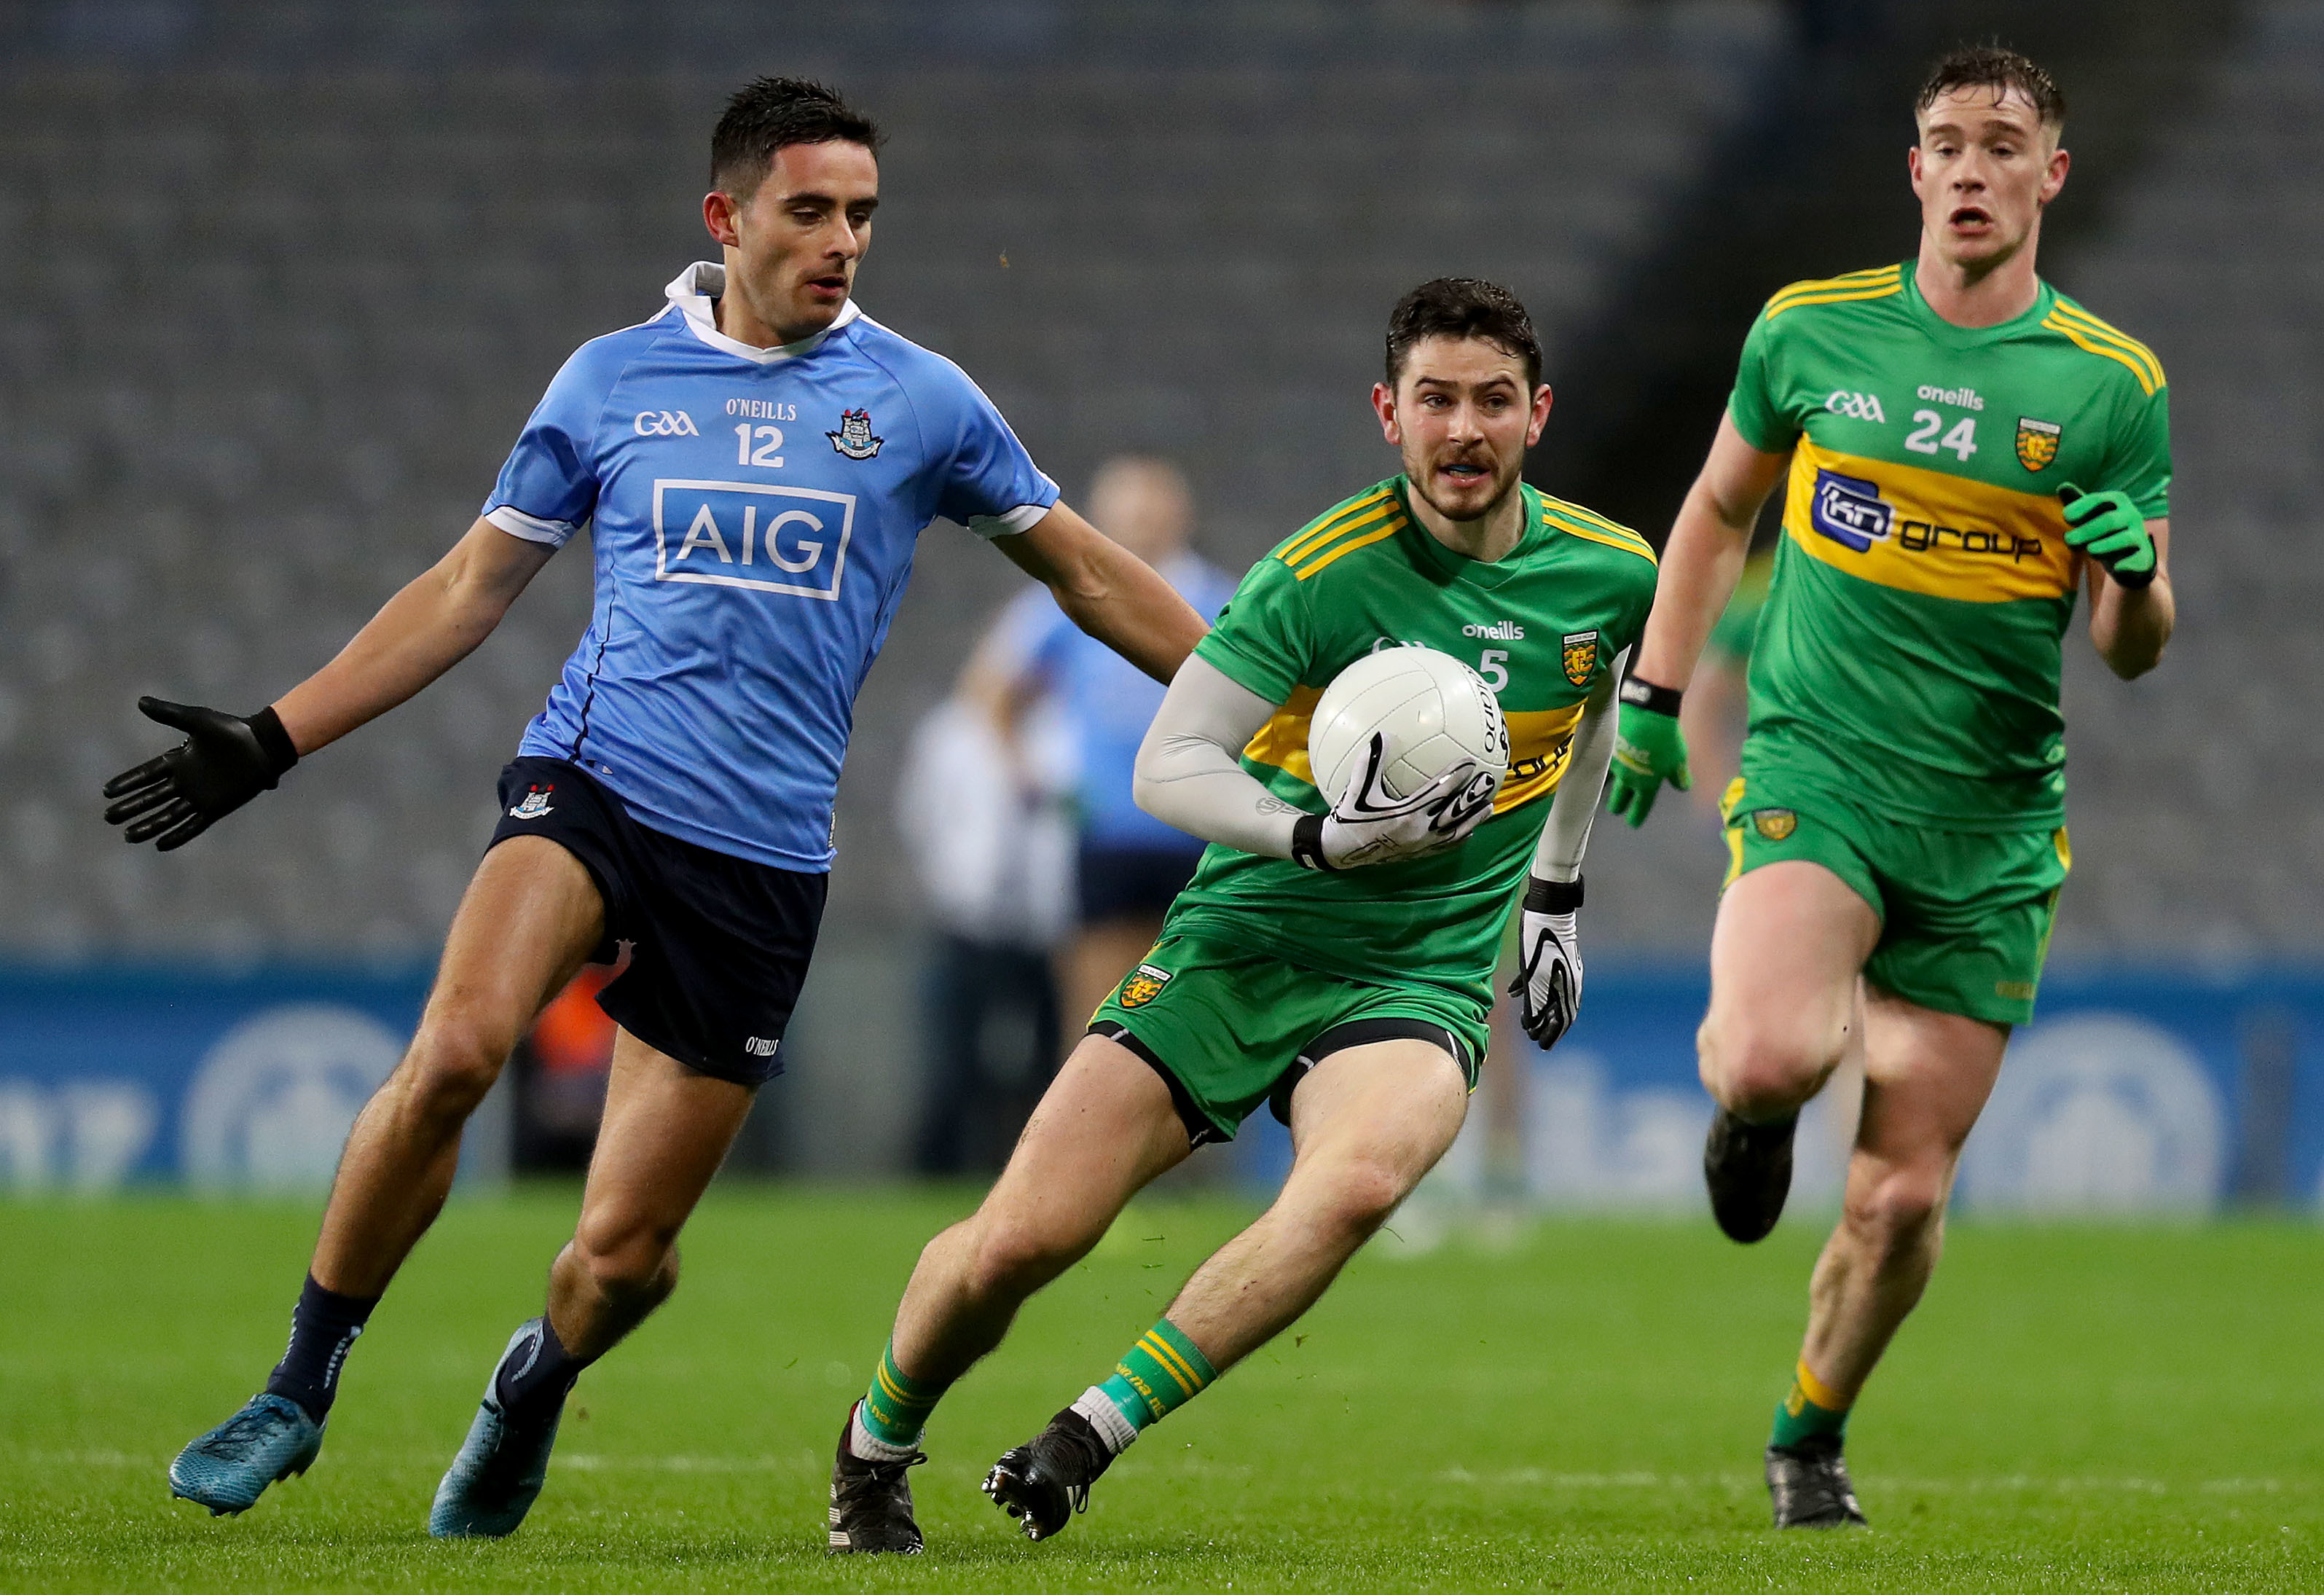 Dublin's Niall Scully and Donegal's Ryan McHugh.